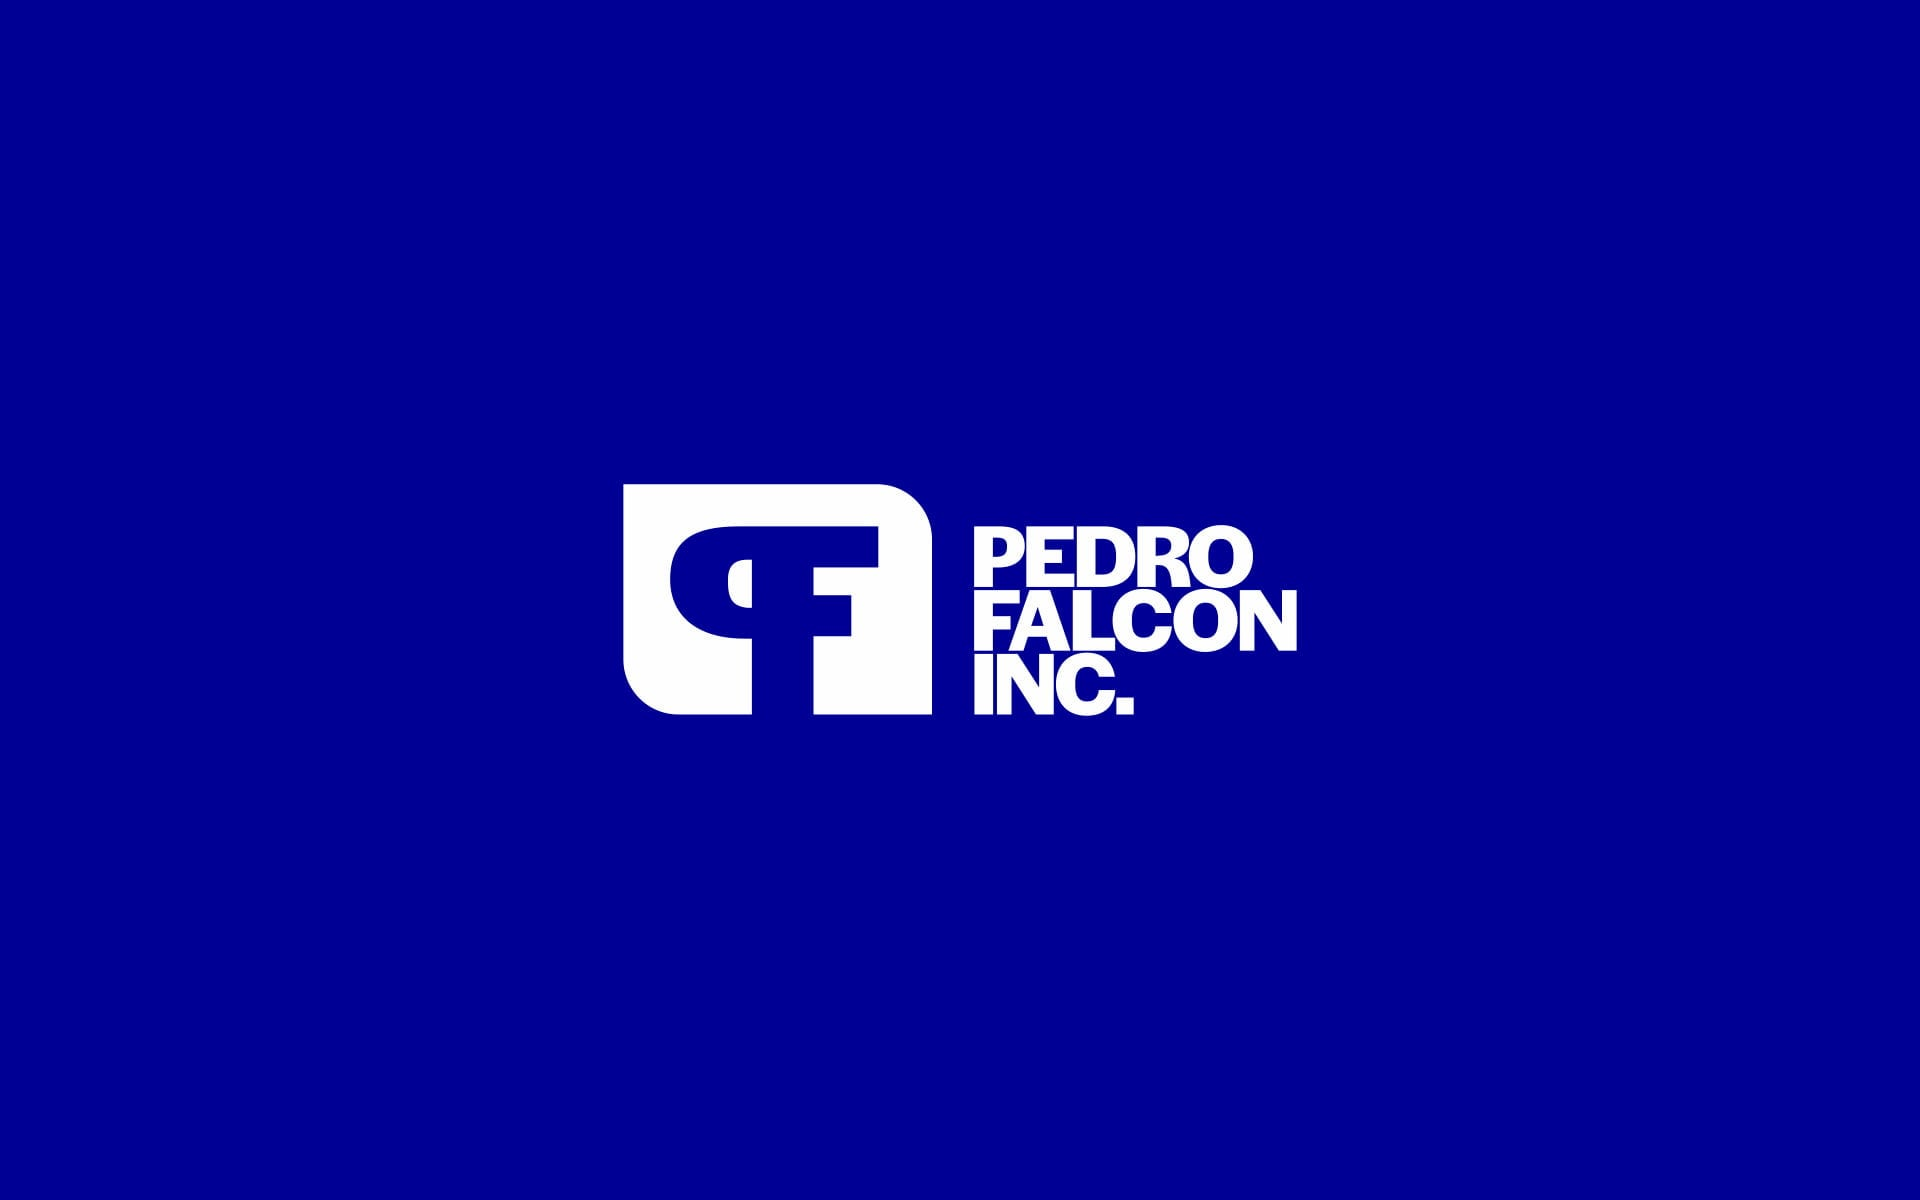 New Pedro Falcon Contractors logo, with a wordmark set in a bold sans-serif typeface